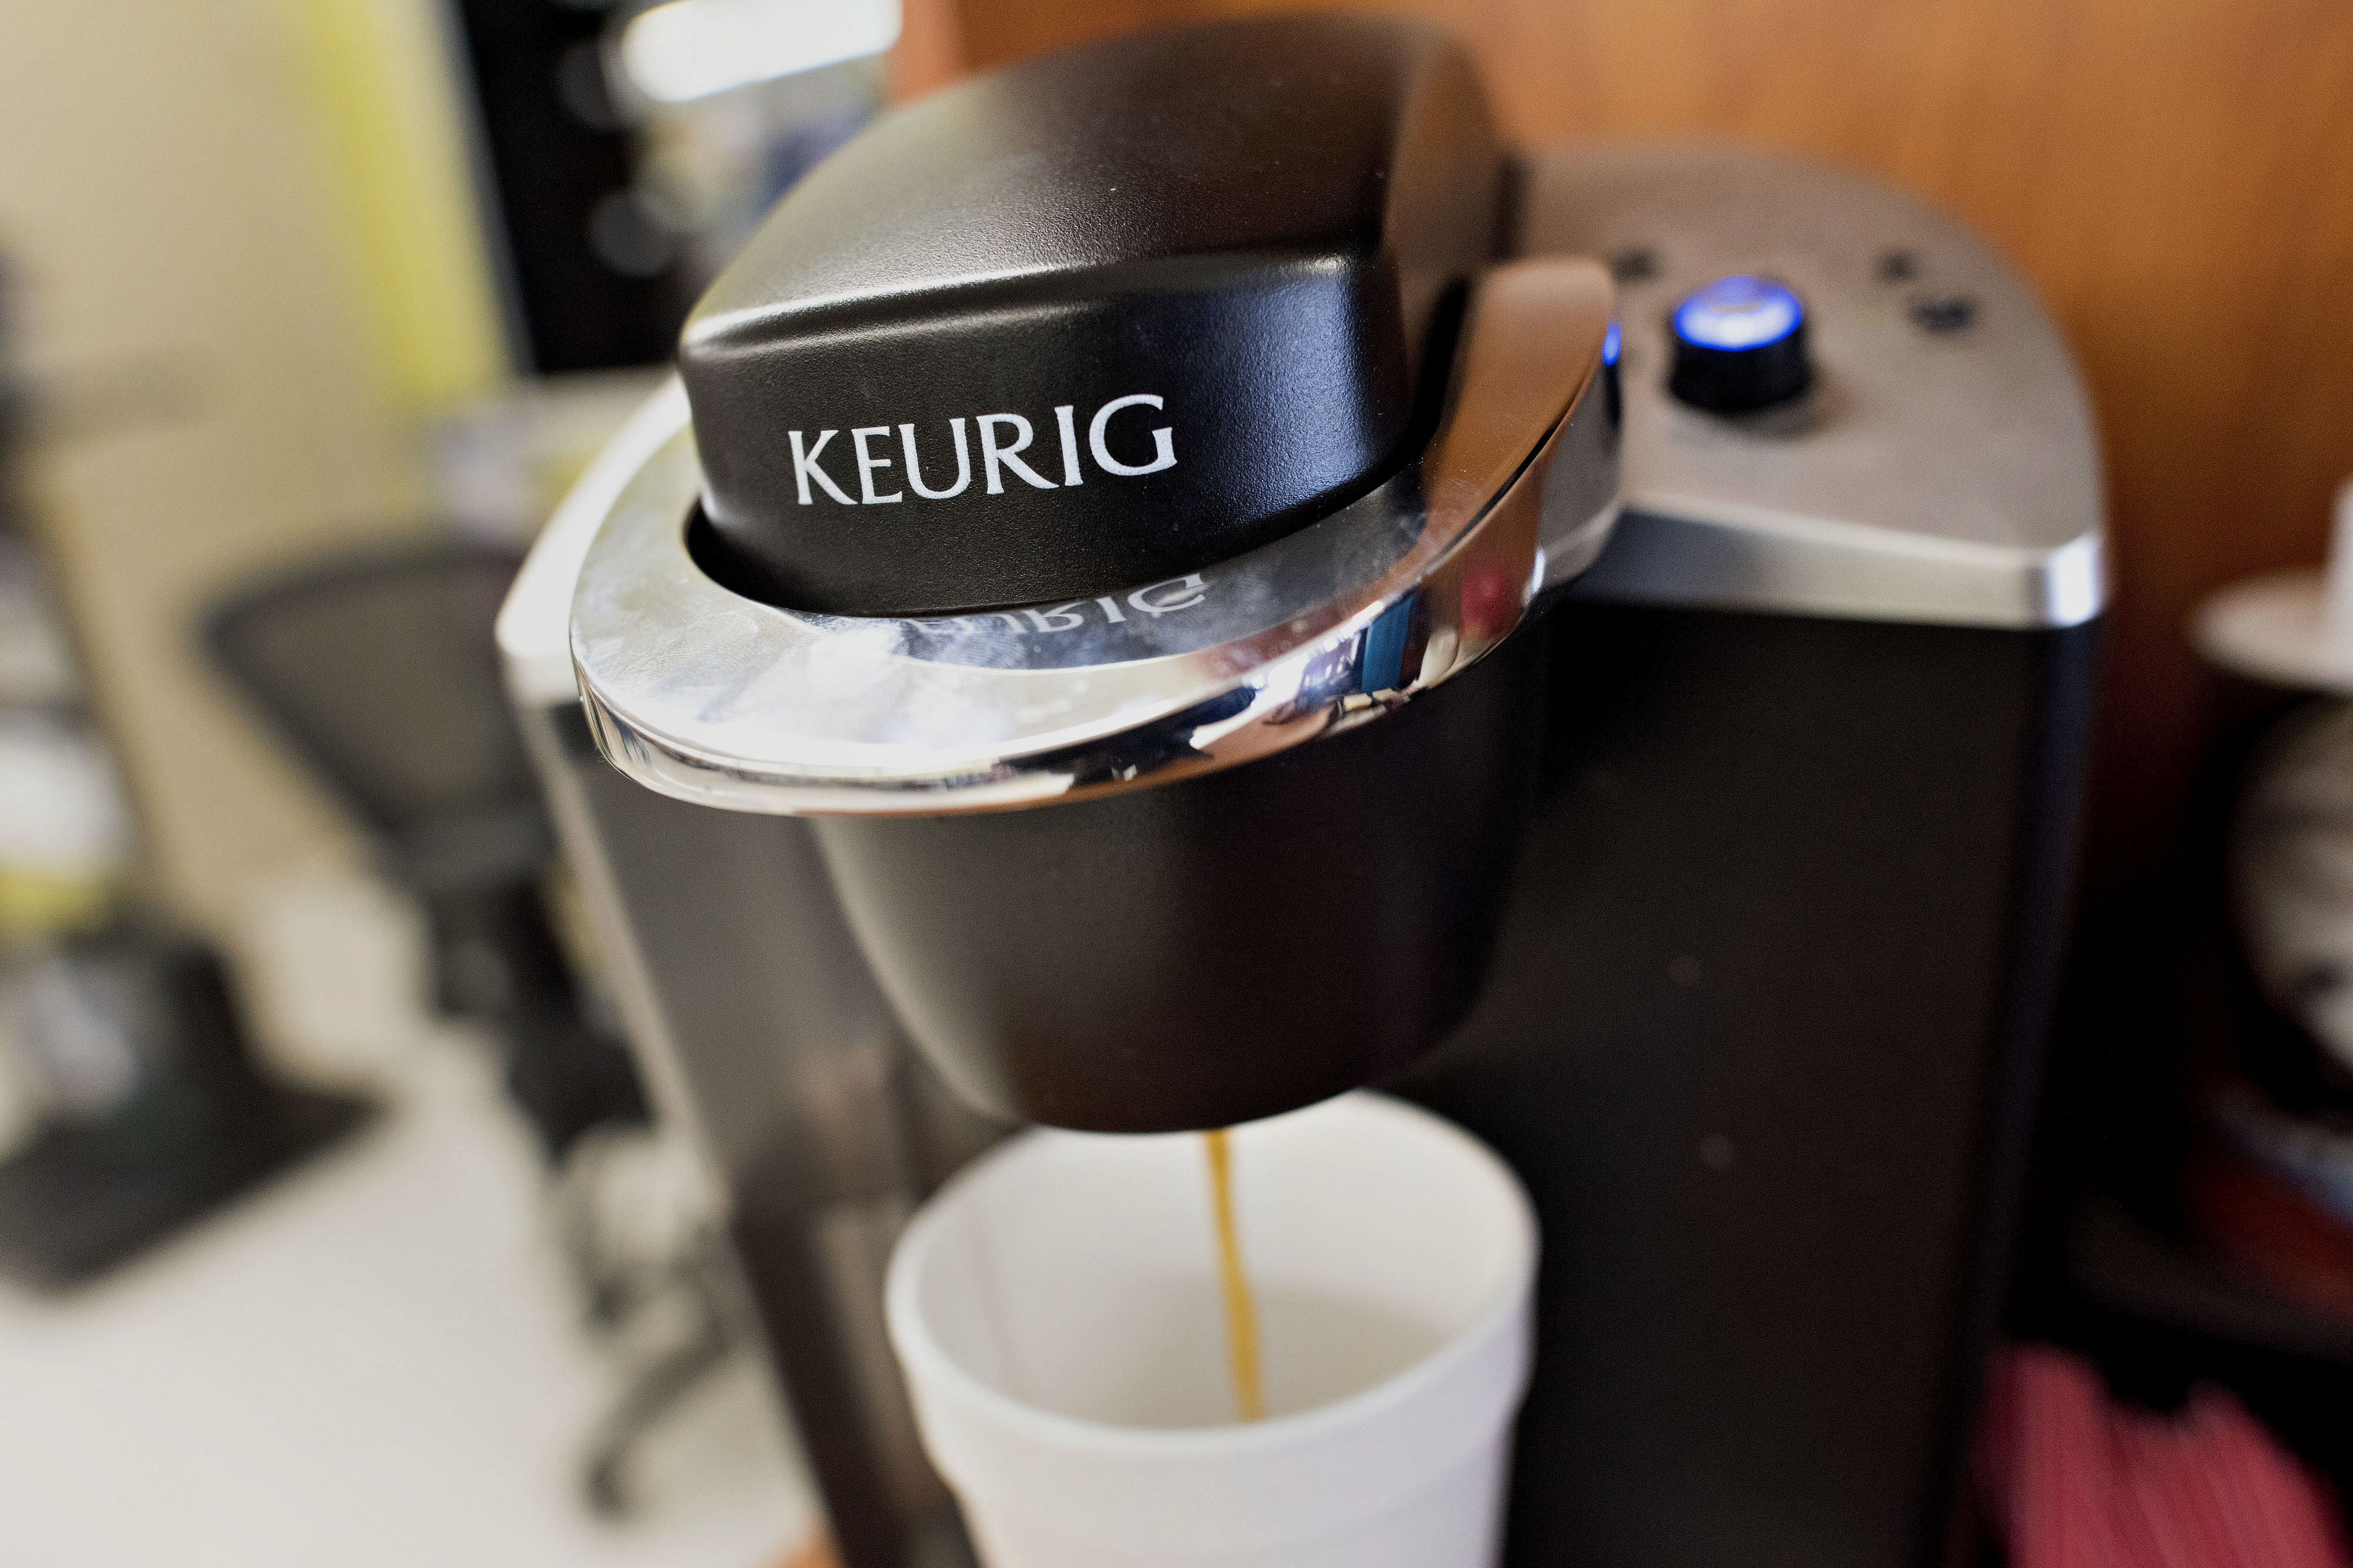 We're Finally Getting a Keurig That Makes Beer